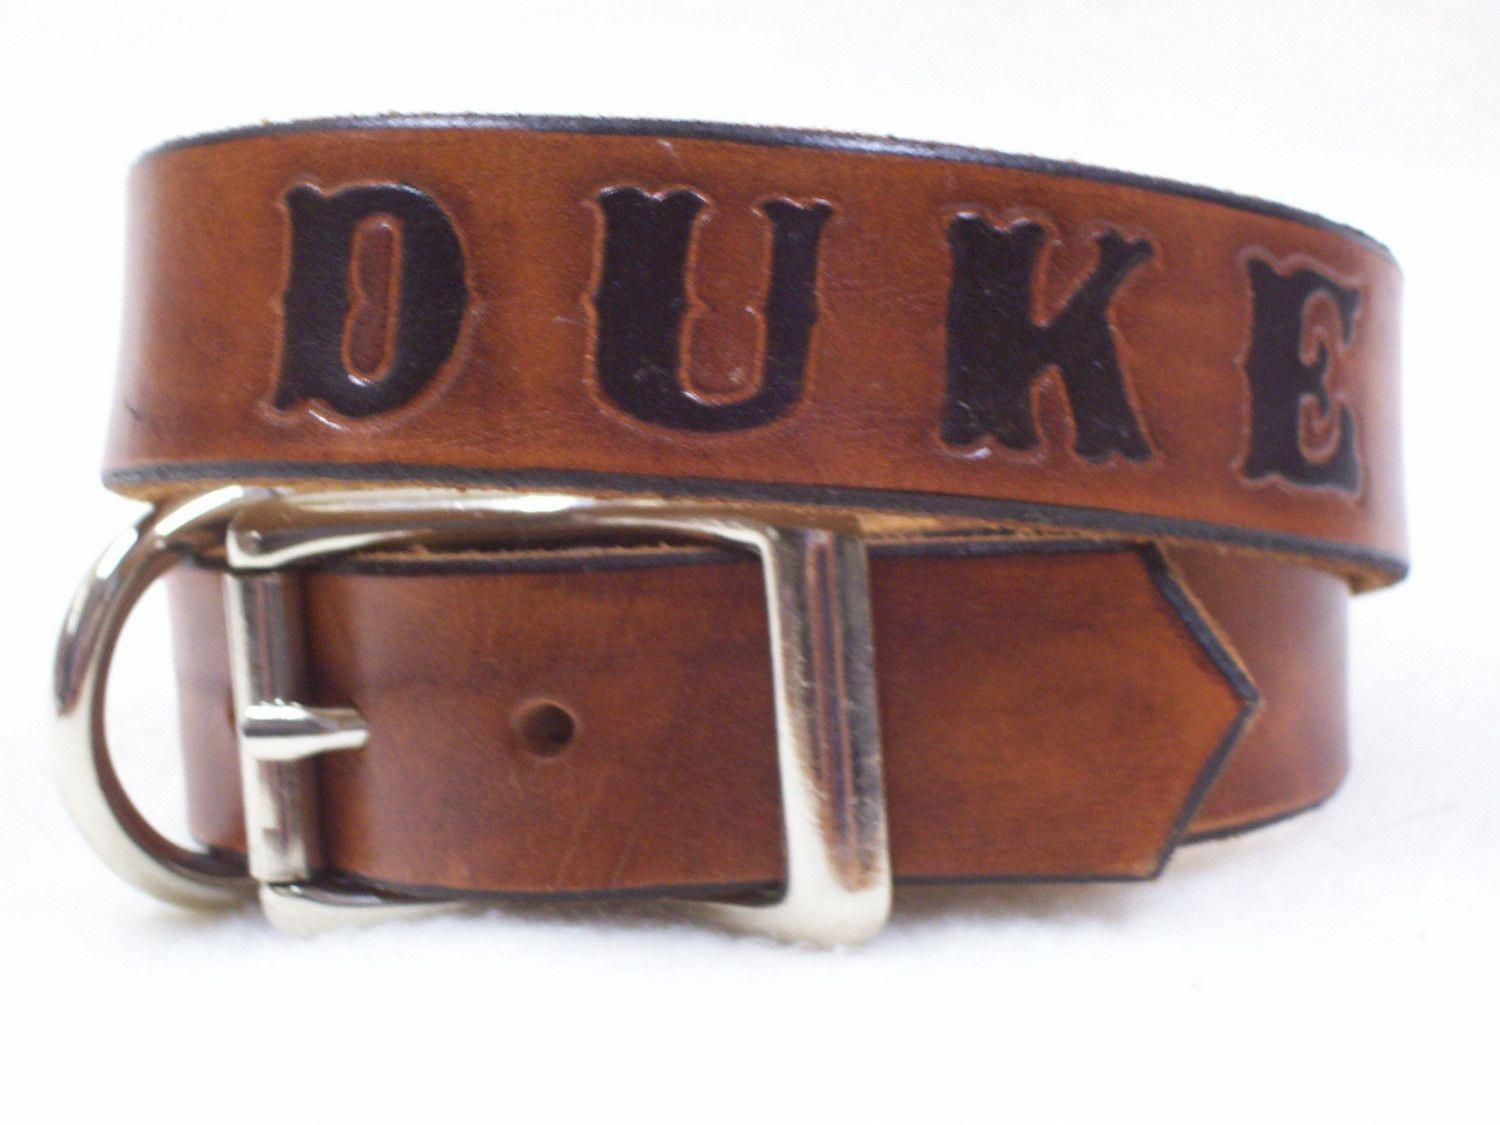 For boone dog leather dog collar personalized with your dogs name